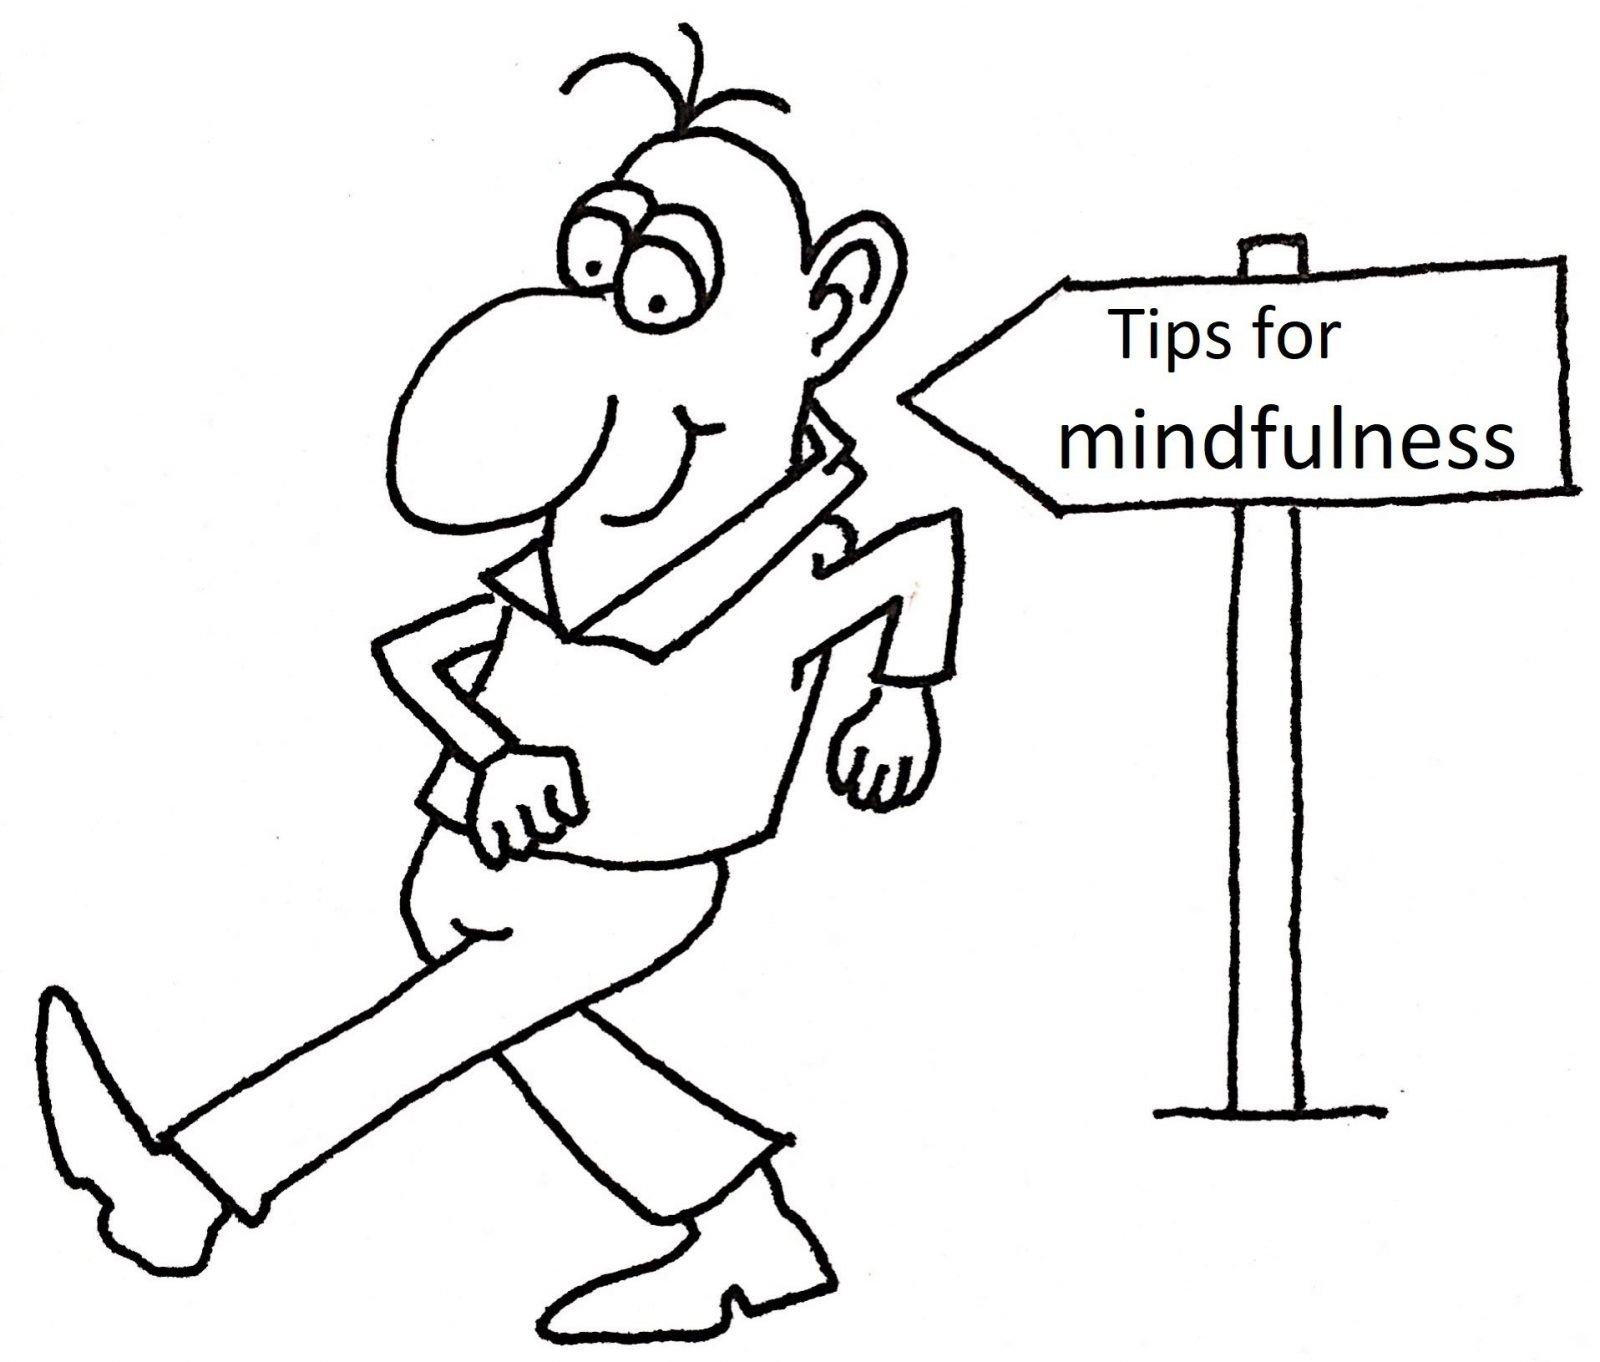 tips-for-mindfulness.jpg